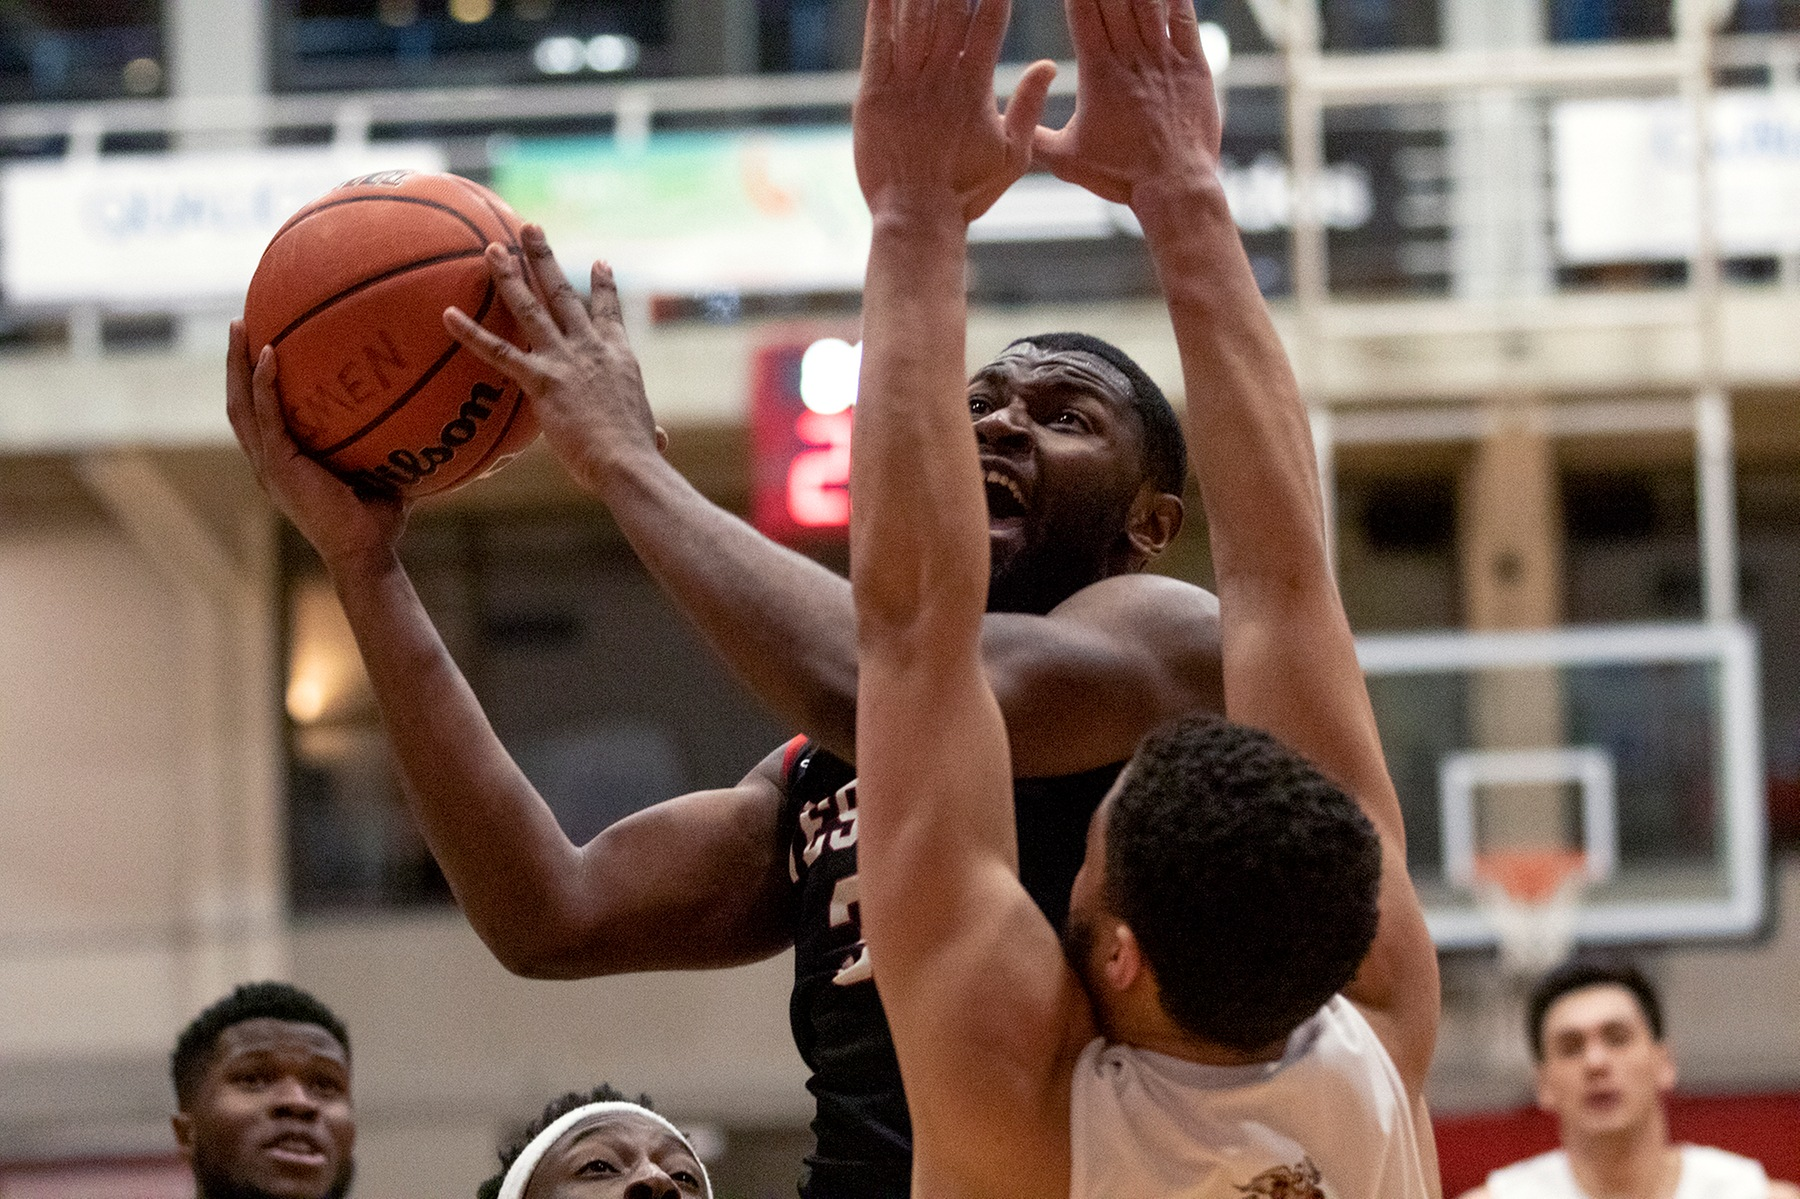 Narcisse Ambanza drives to the hoop against the MacEwan Griffins during Wesmen men's basketball action at the Duckworth Centre on Saturday, Jan. 11, 2020. (David Larkins/Wesmen Athletics)